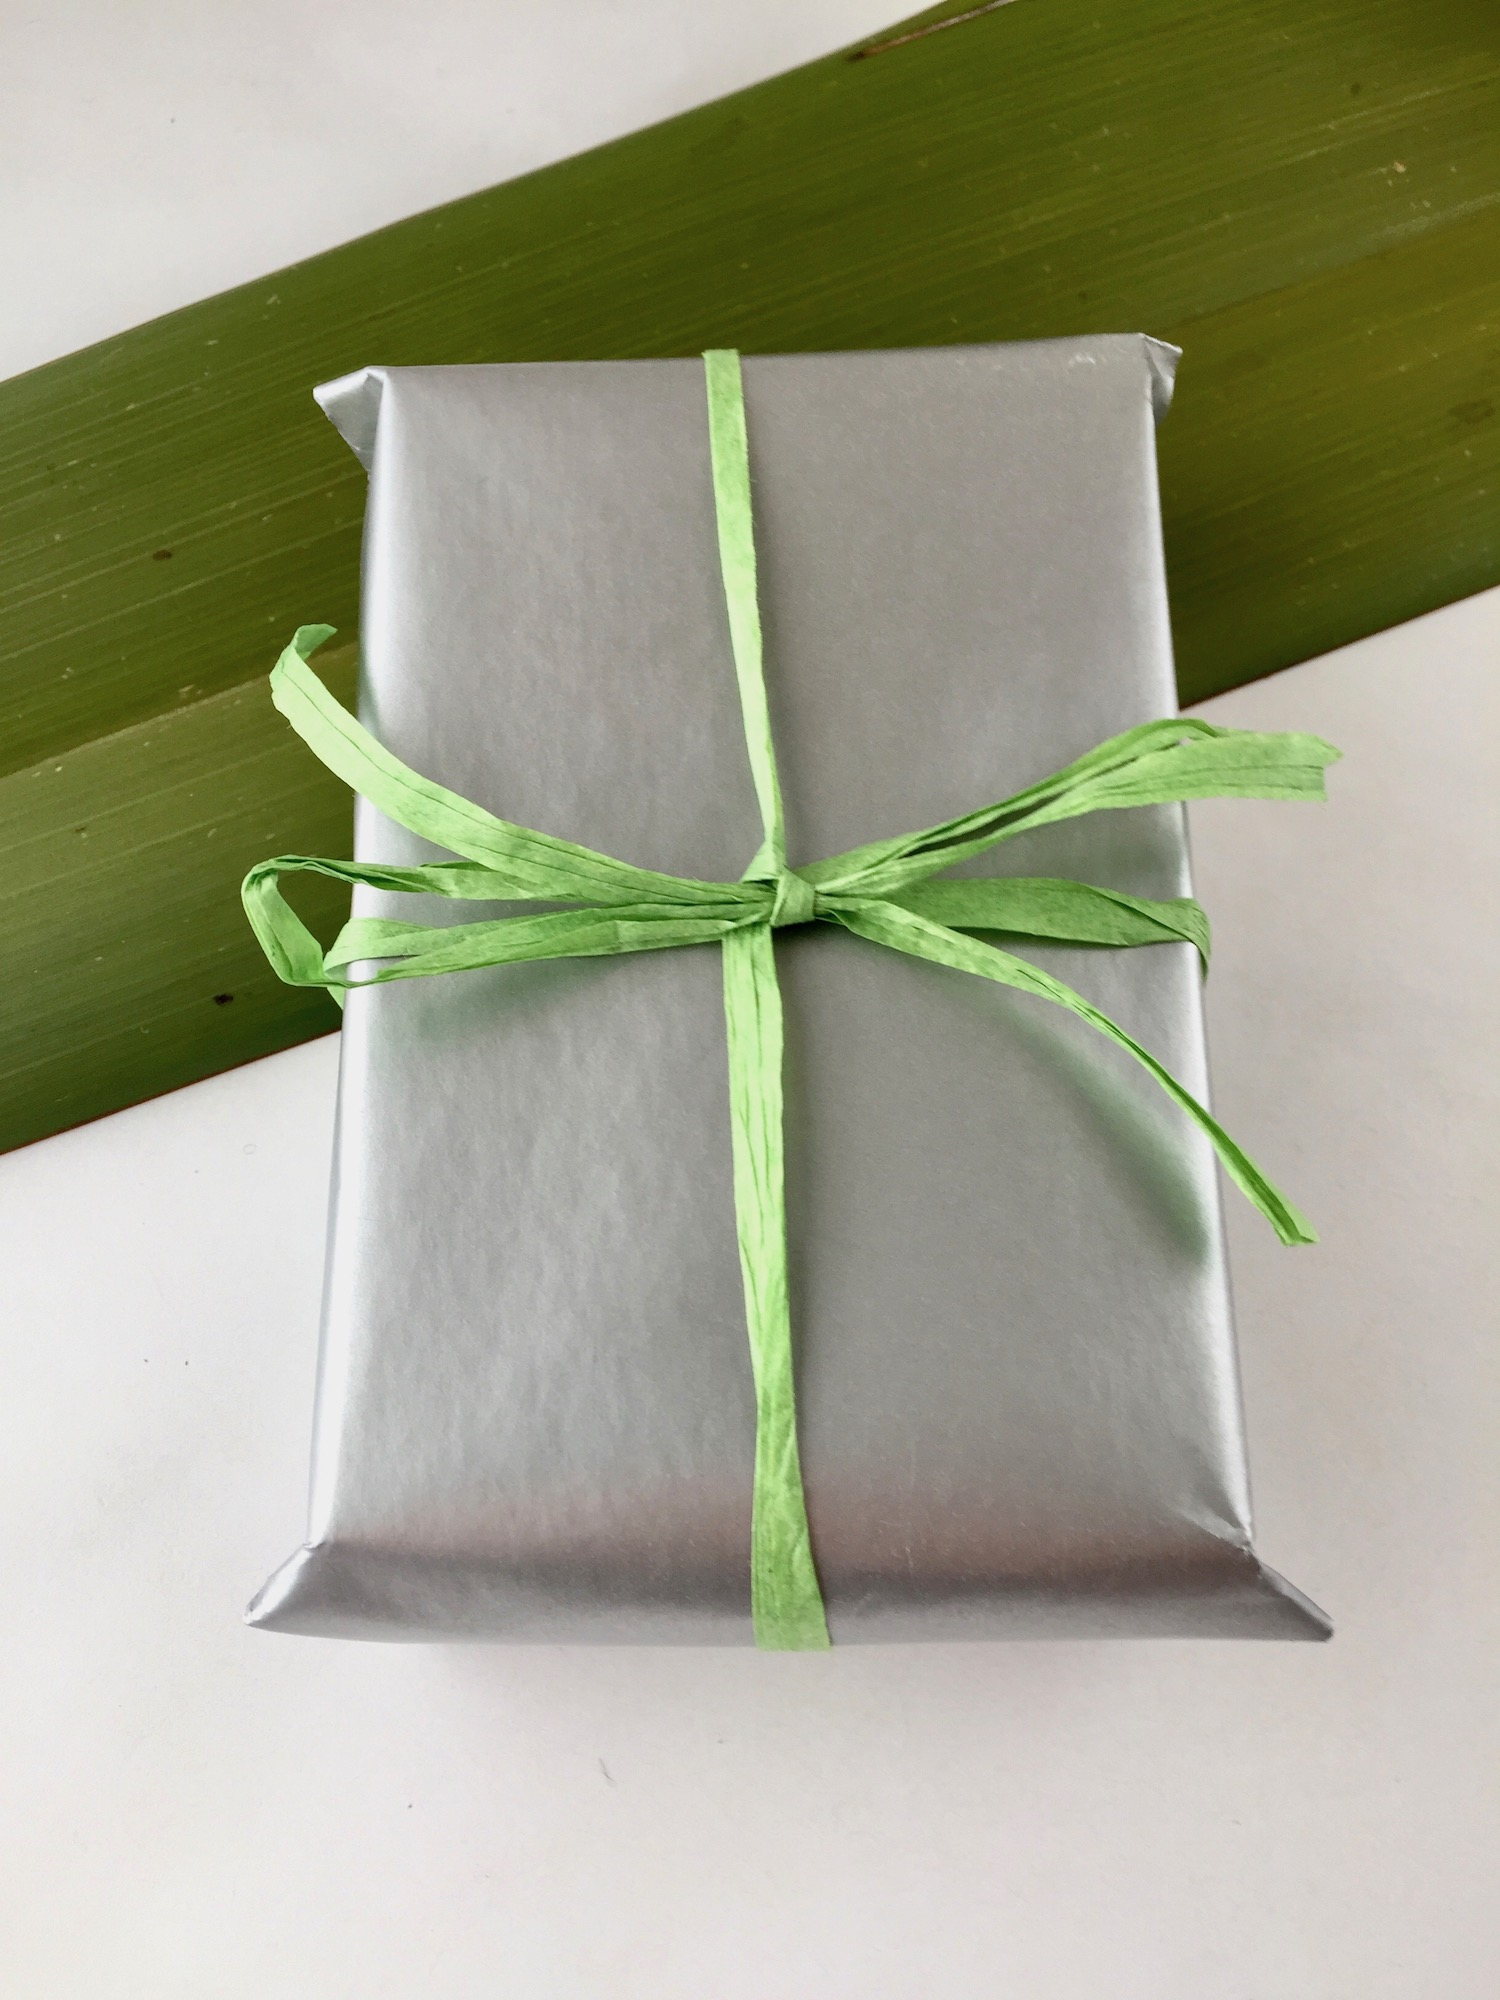 Gift wrapped box with green paper ribbon